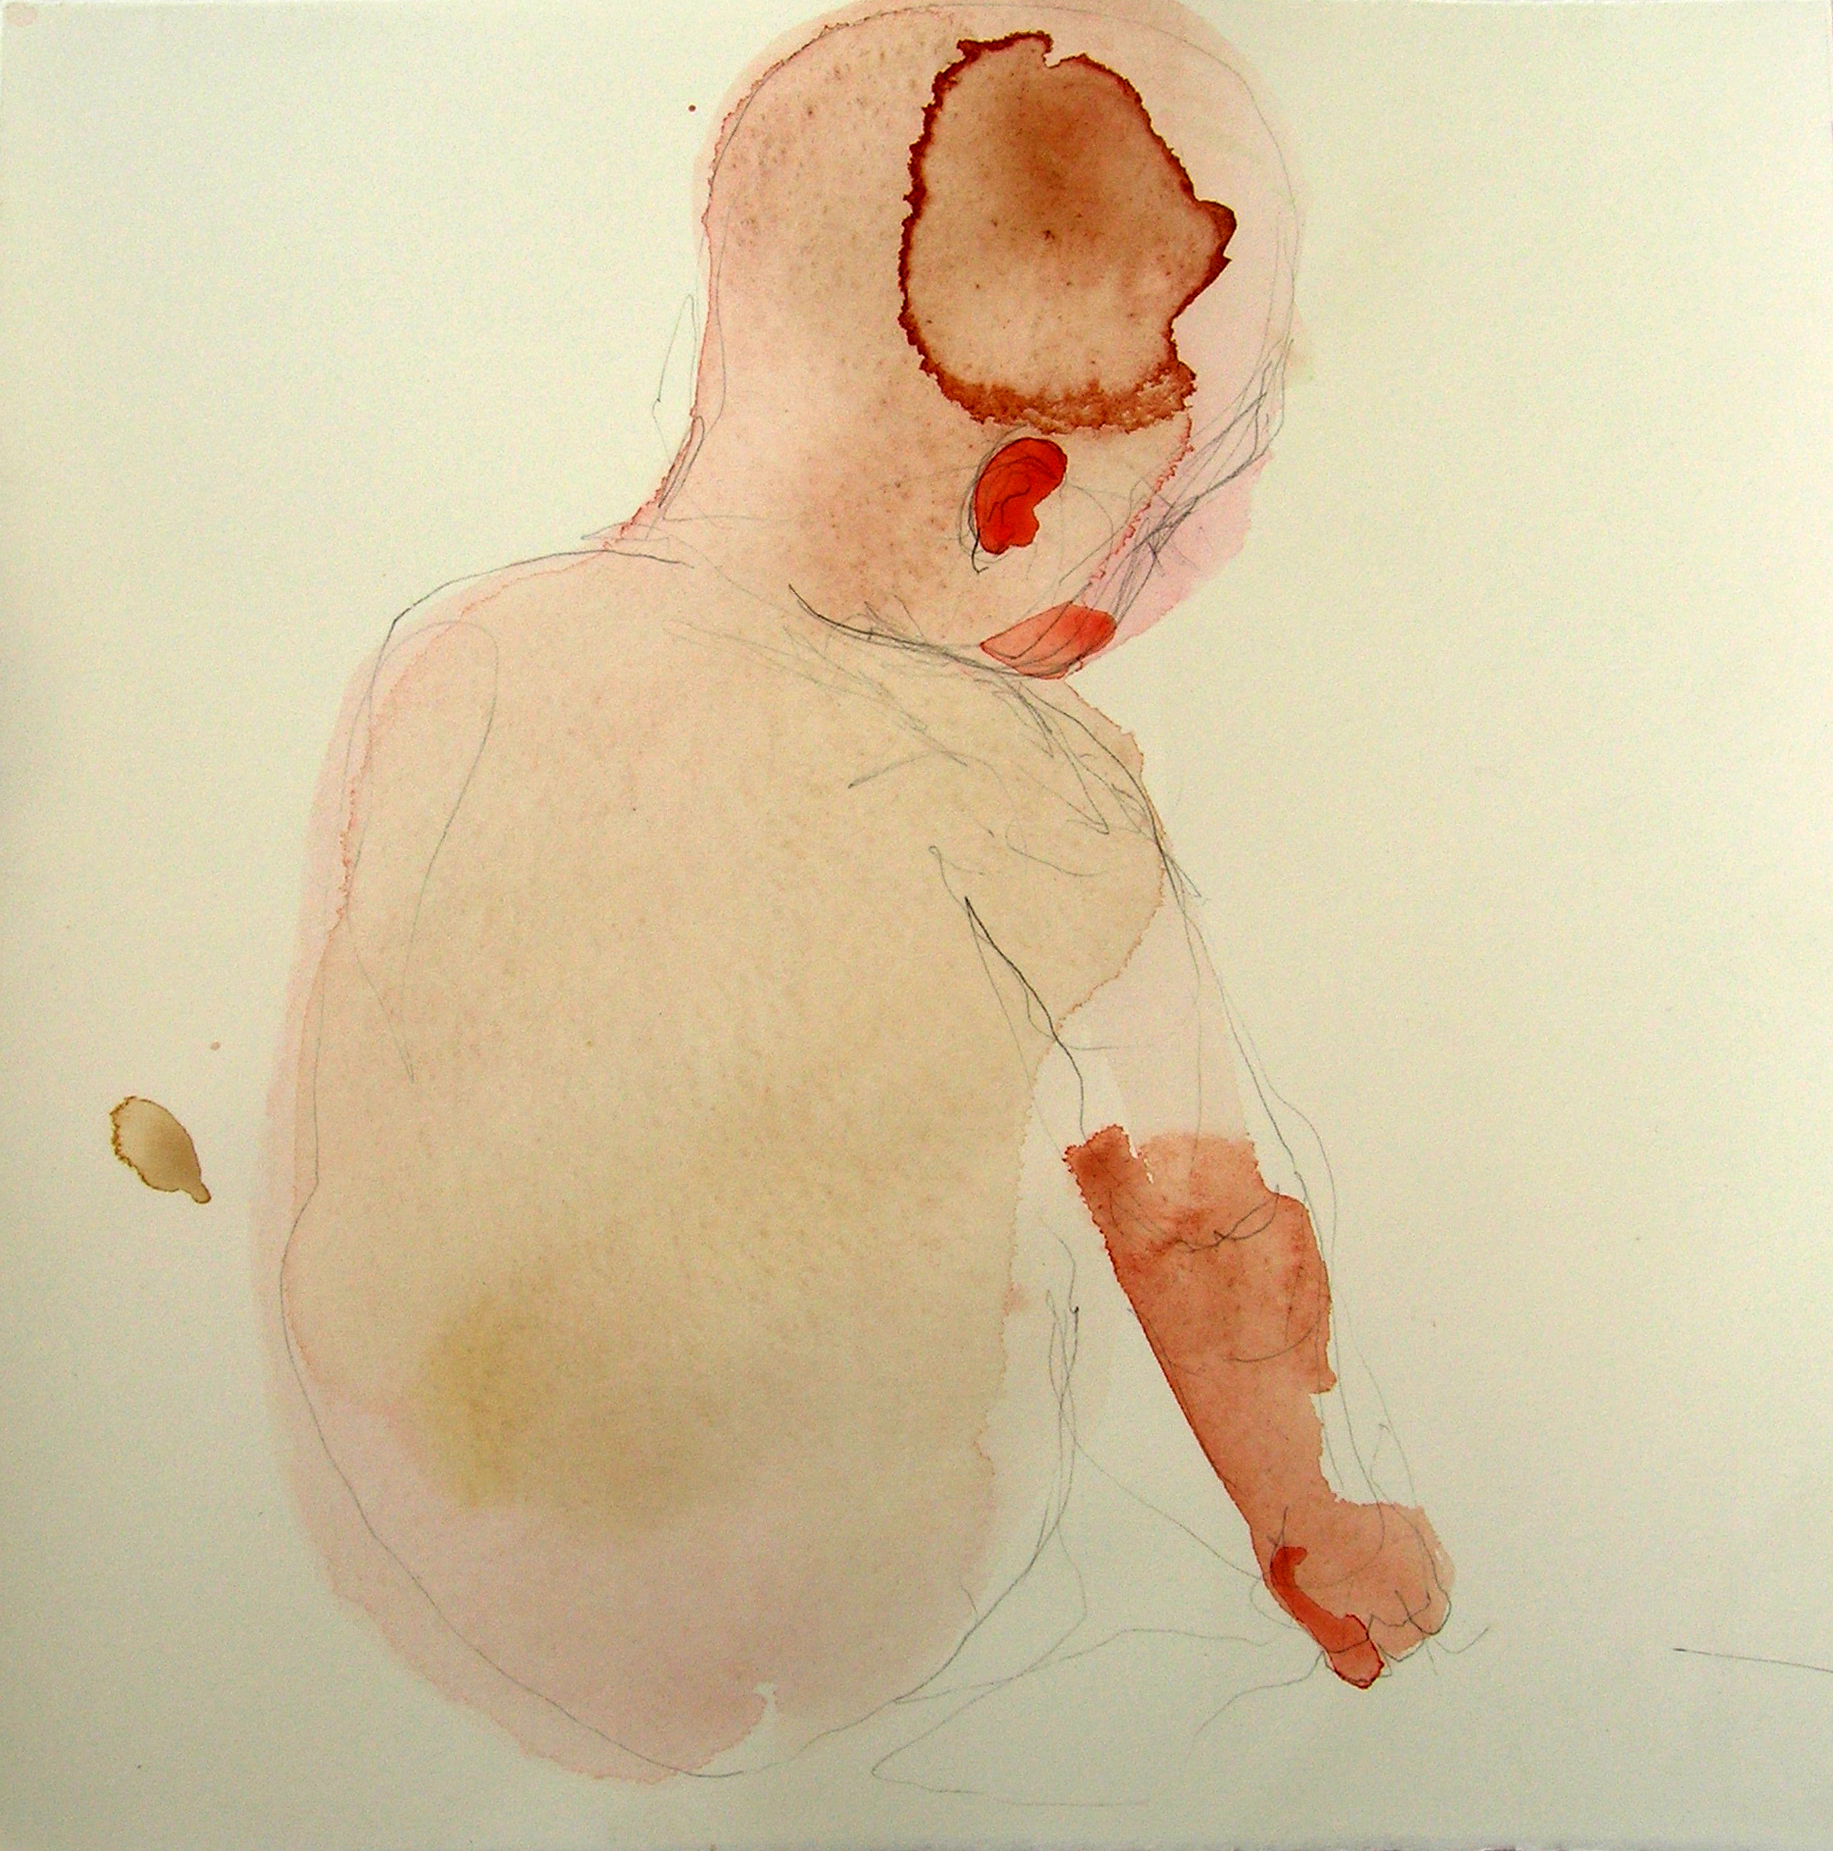 Sentar 20, 2007, Graphite and watercolor on paper, 13 X 12 in.